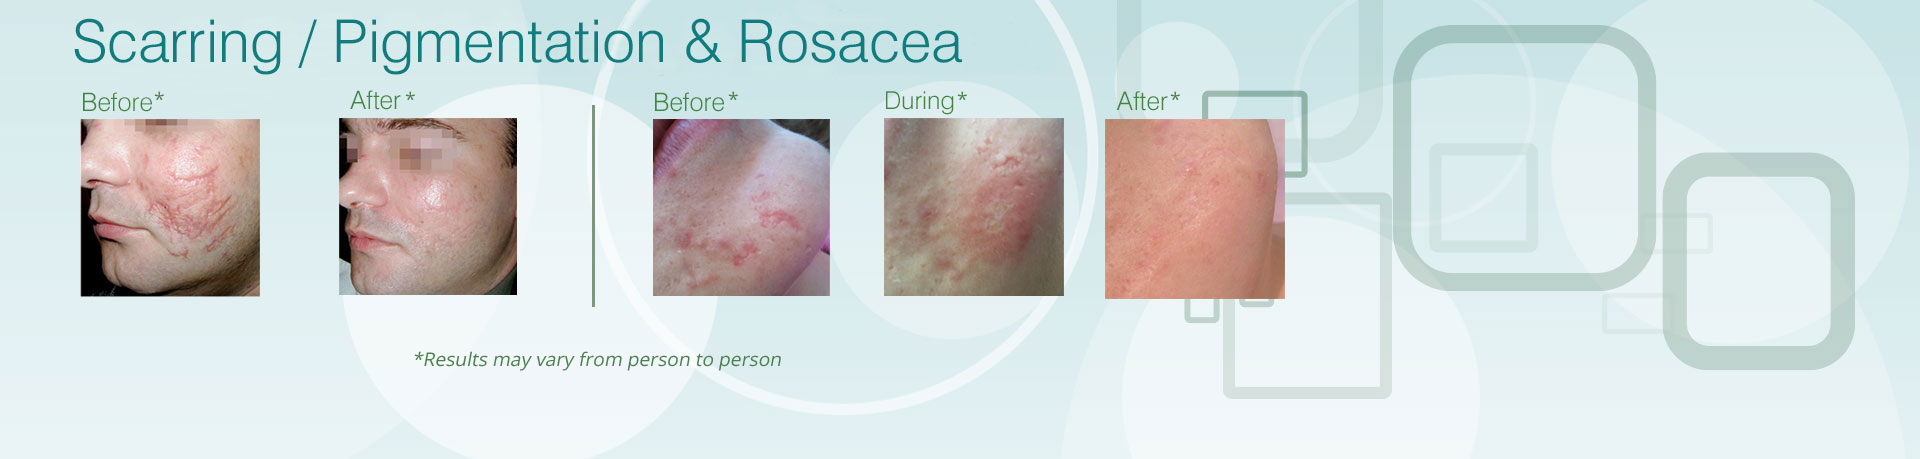 scarring pigmentation and rosacea treatment bolton